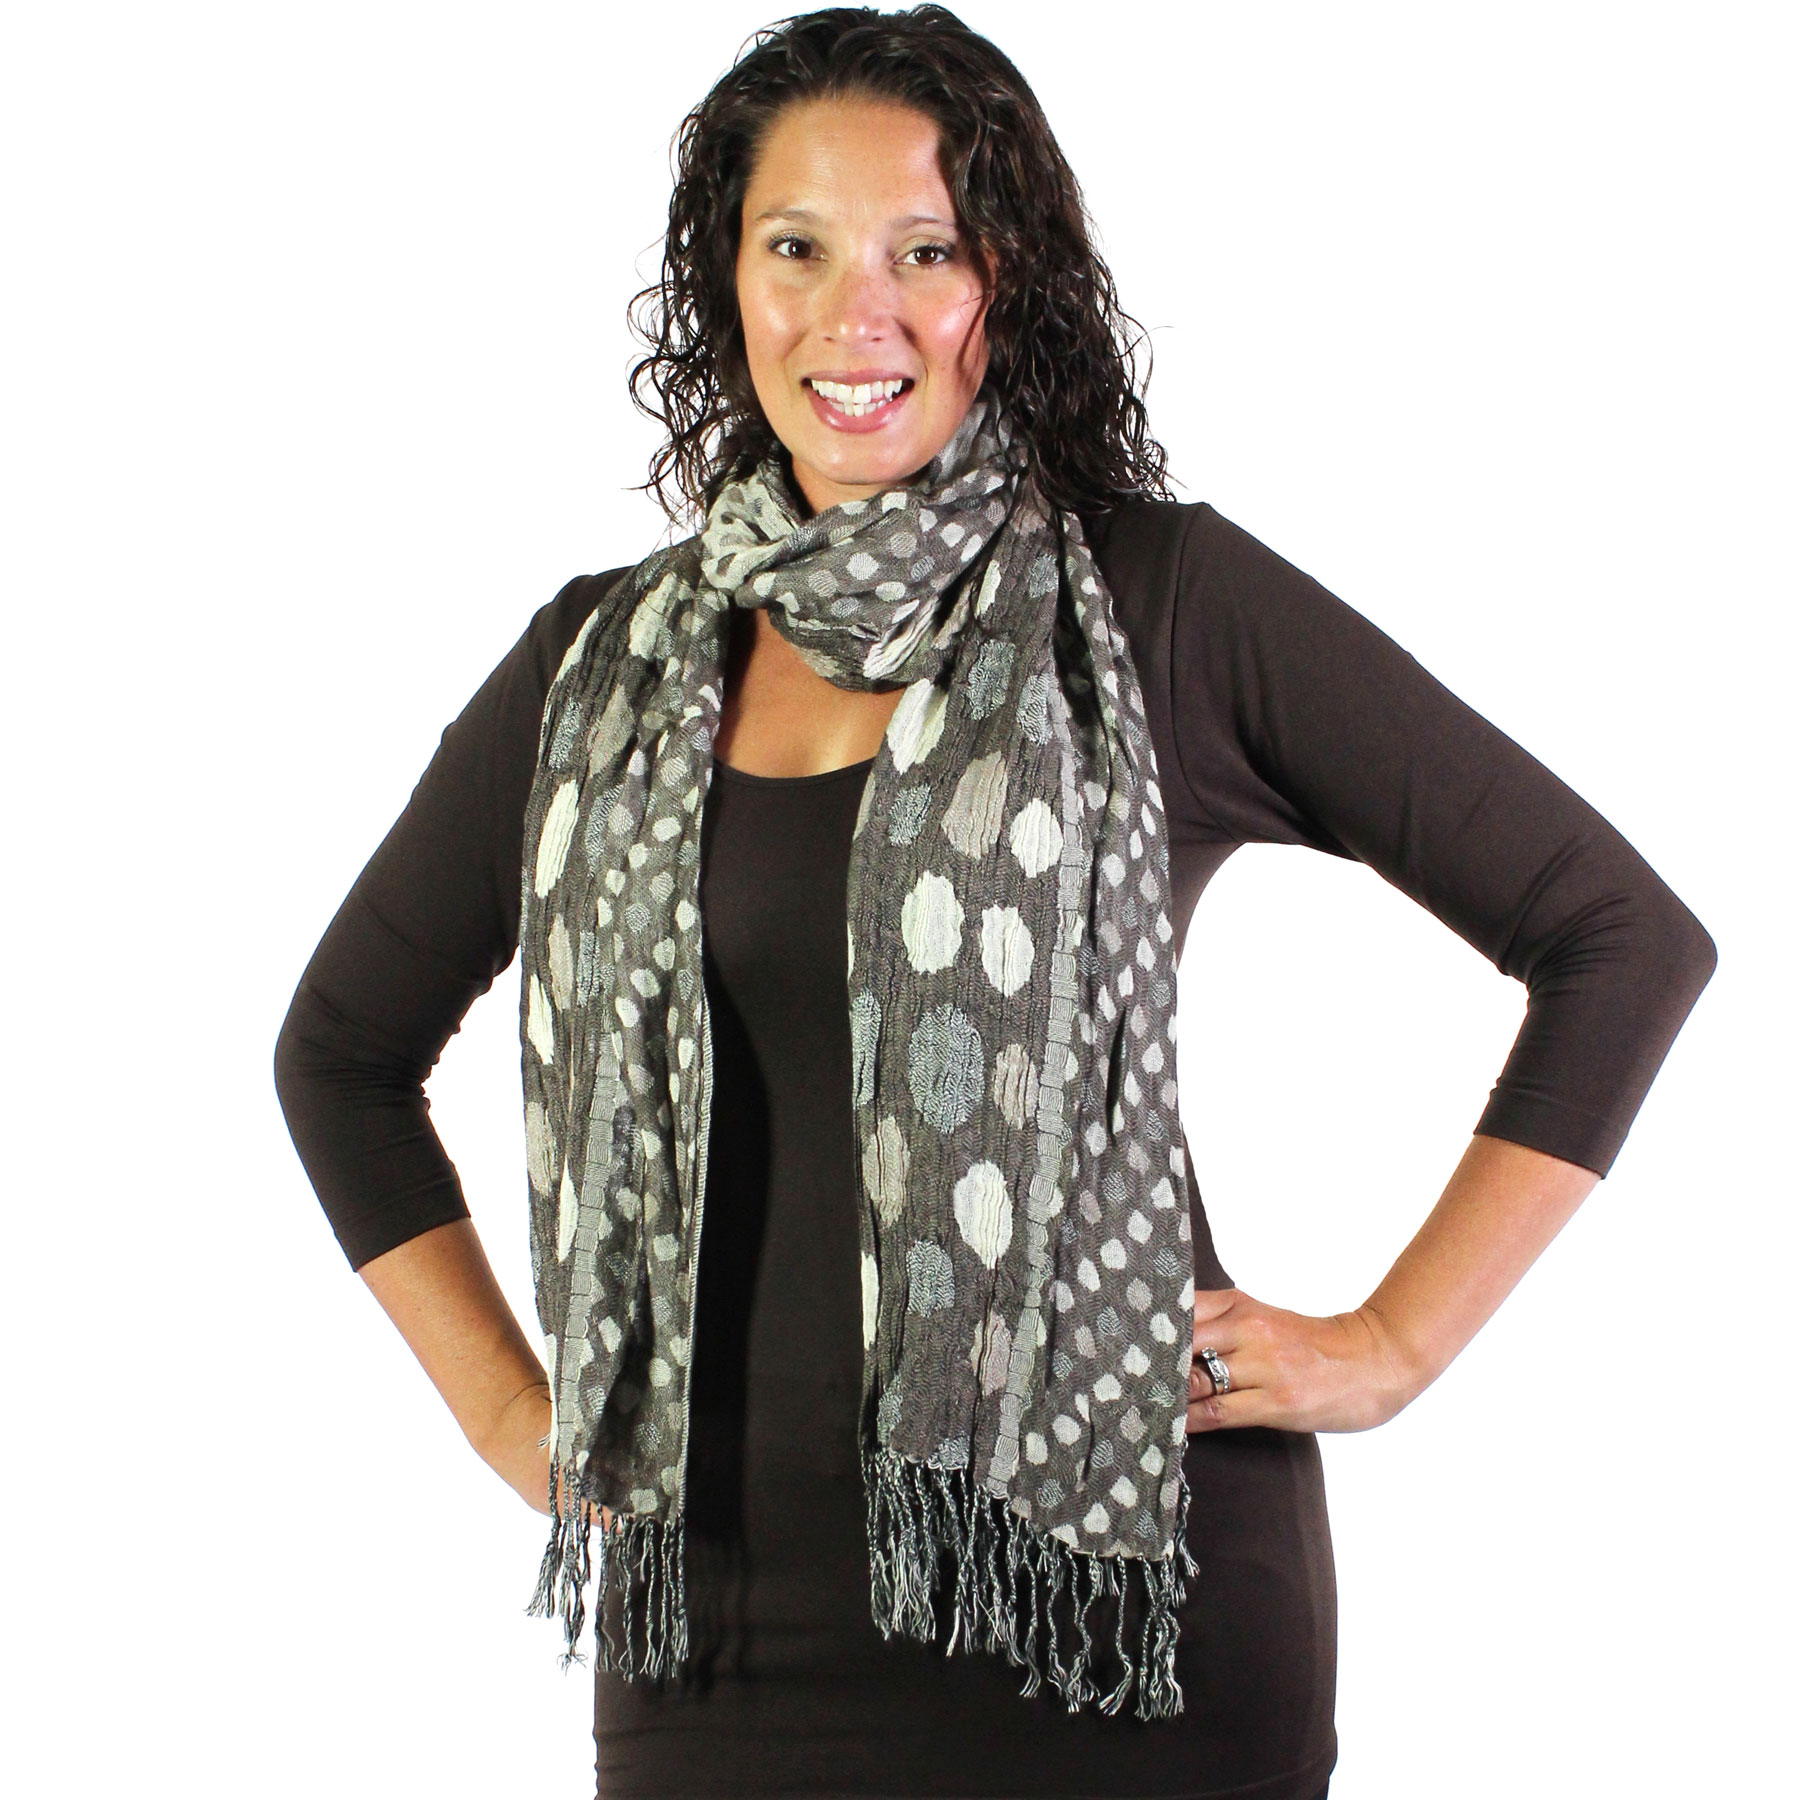 Oblong Scarves - Circles & Soft Pleats 1001